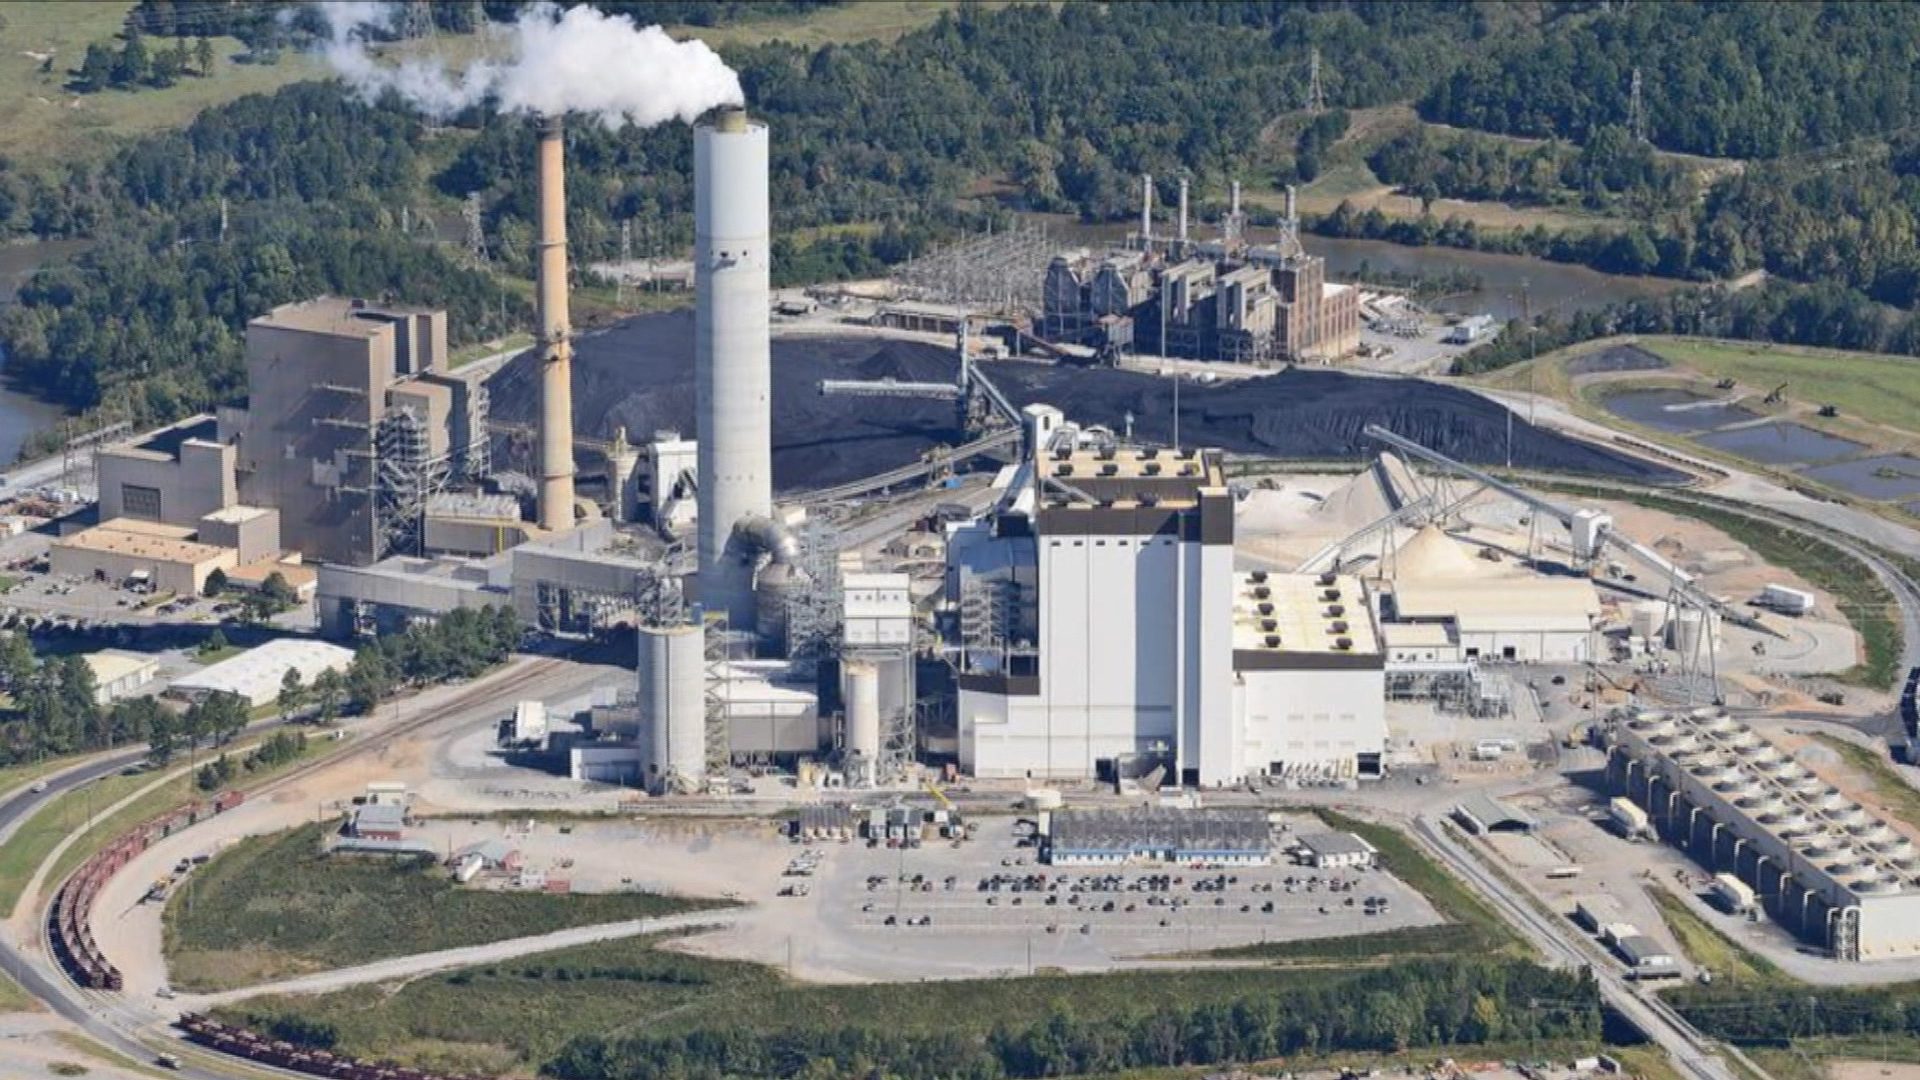 Coal ash poison in water even without spill